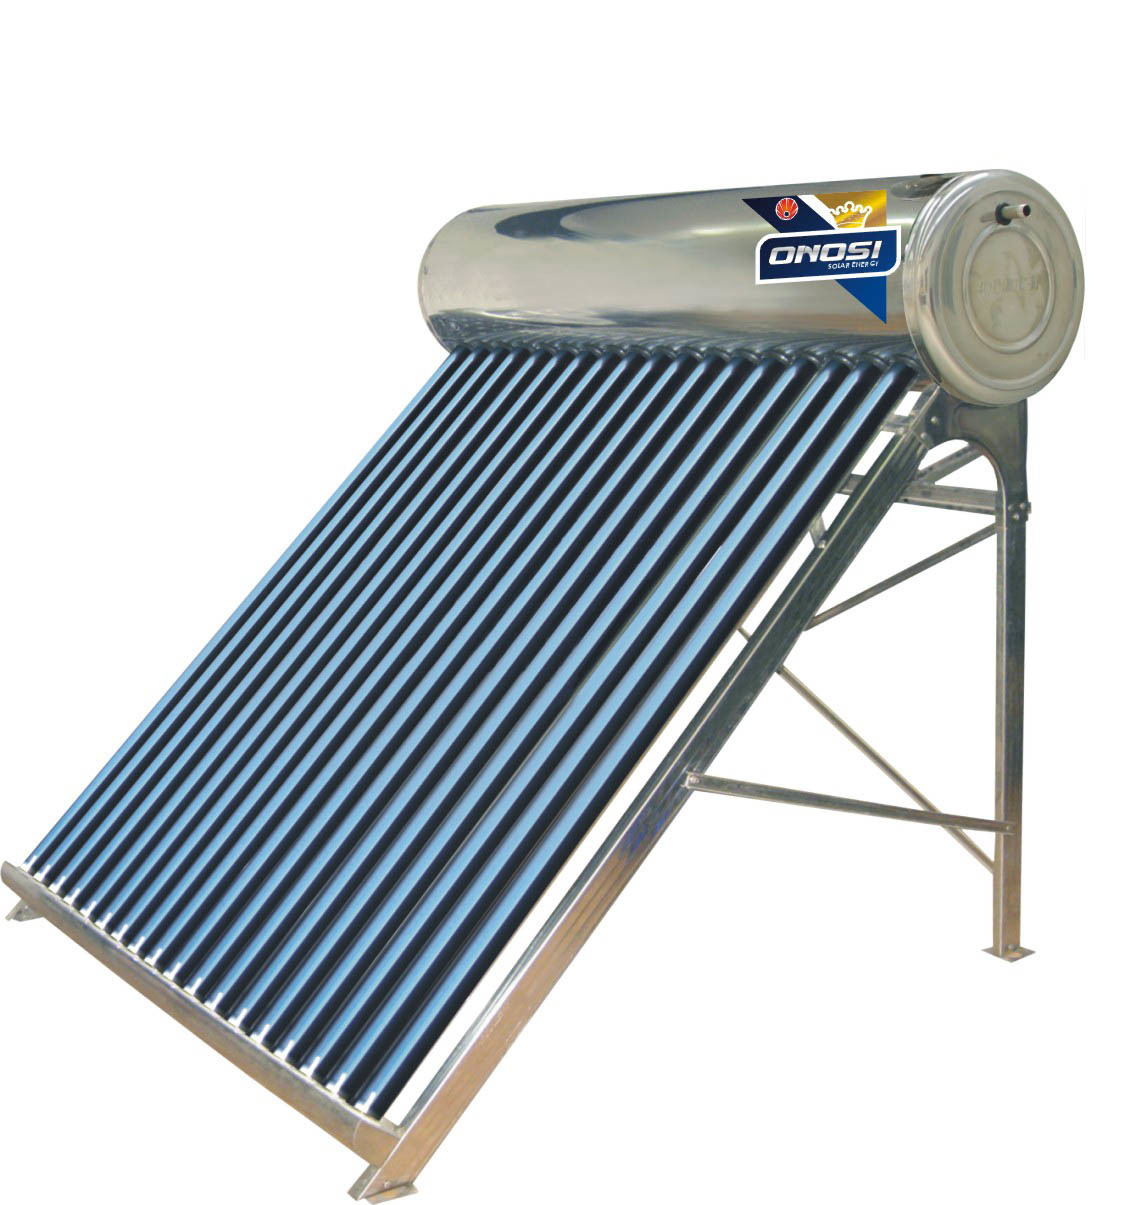 ... Solar Water Heater System (ONS-N01) - China Solar Energy, Solar Heater